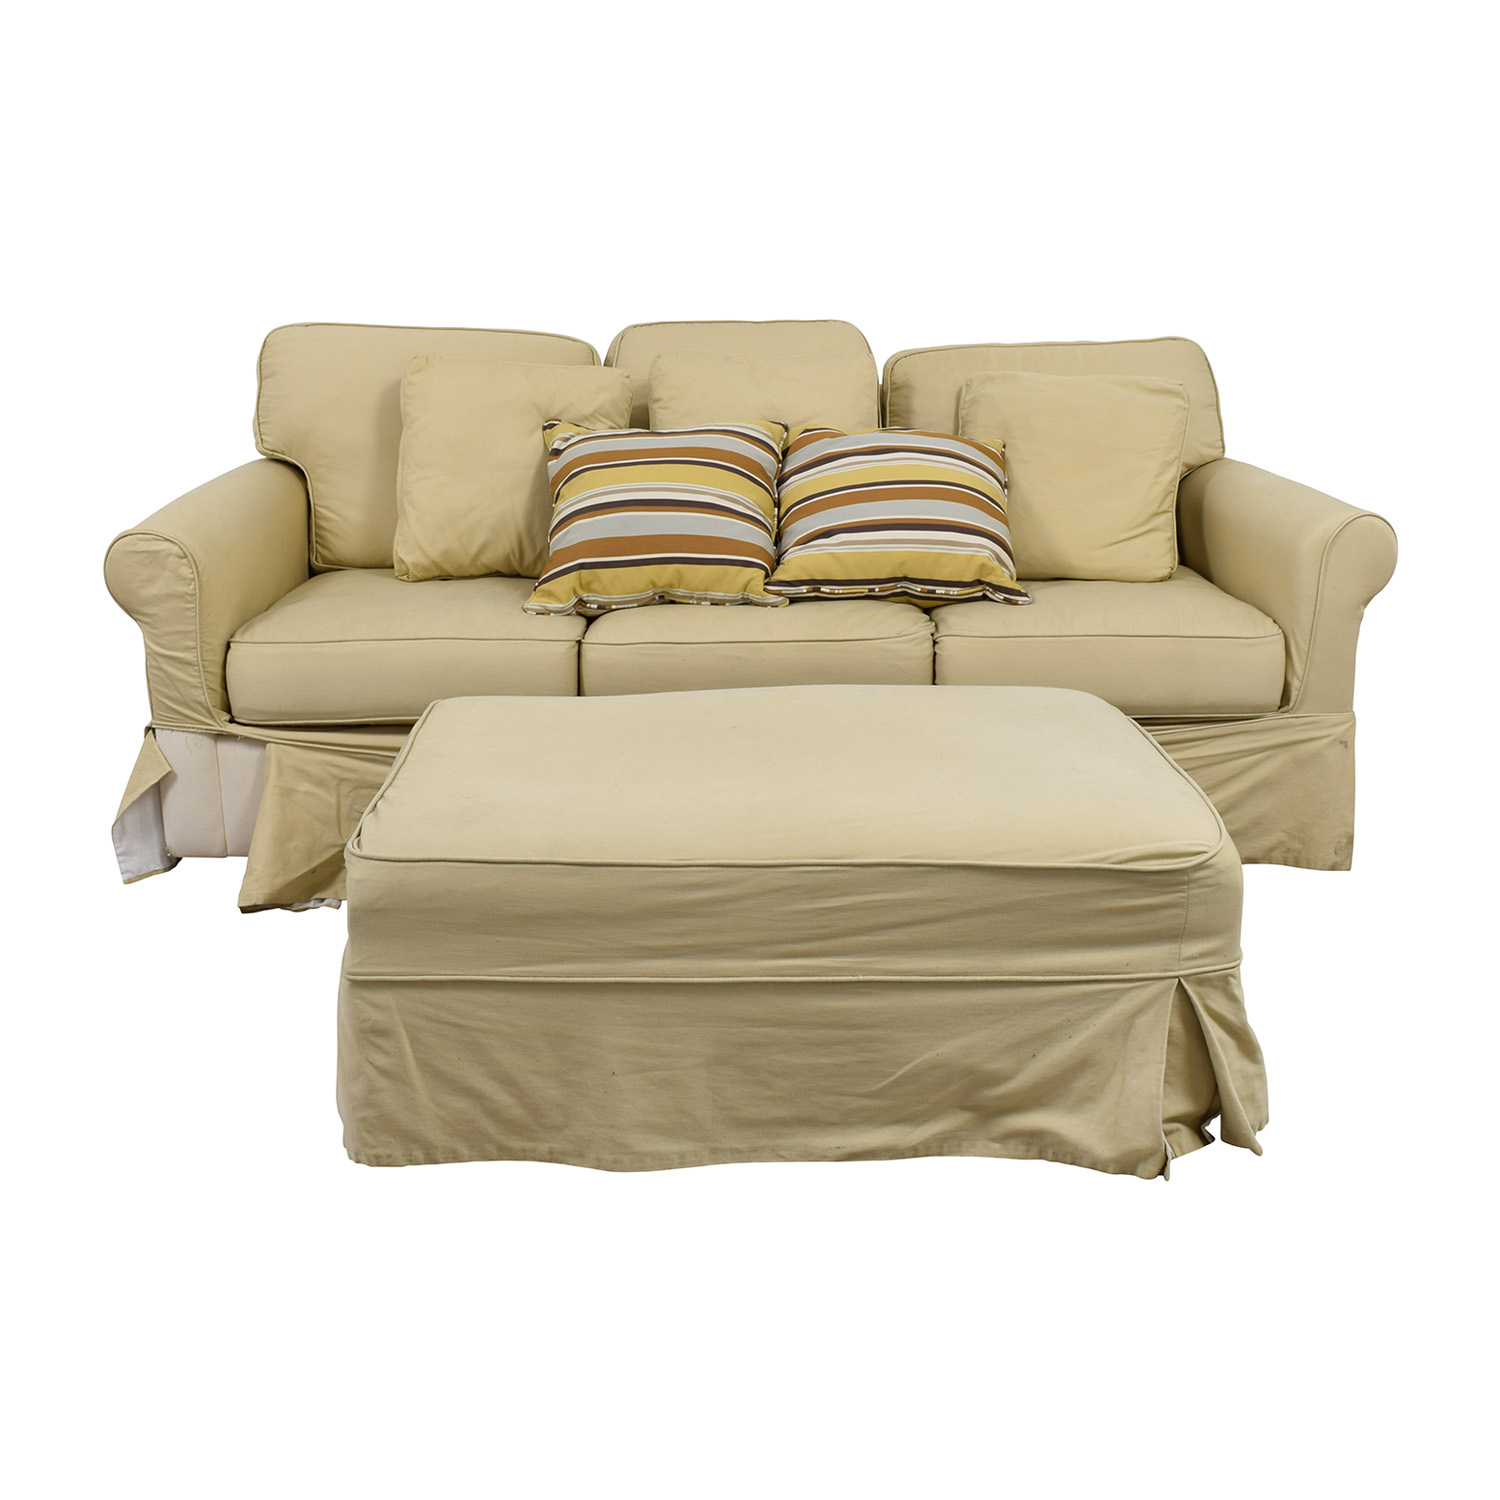 Ballard Design Ballard Design Beige Three-Cushion Couch and Ottoman on sale